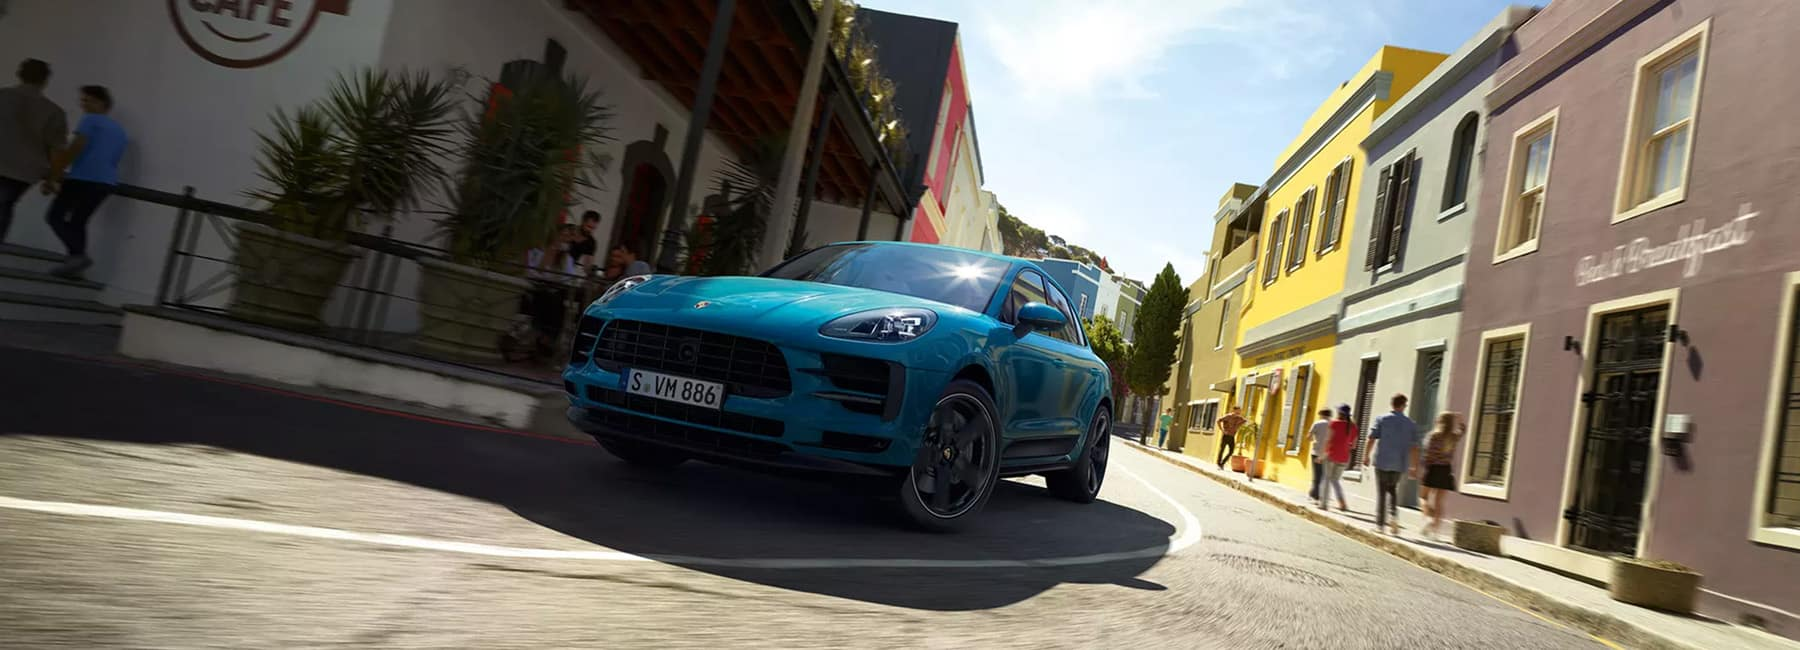 2020 Porsche Macan Specs Review Price Porsche Of Ann